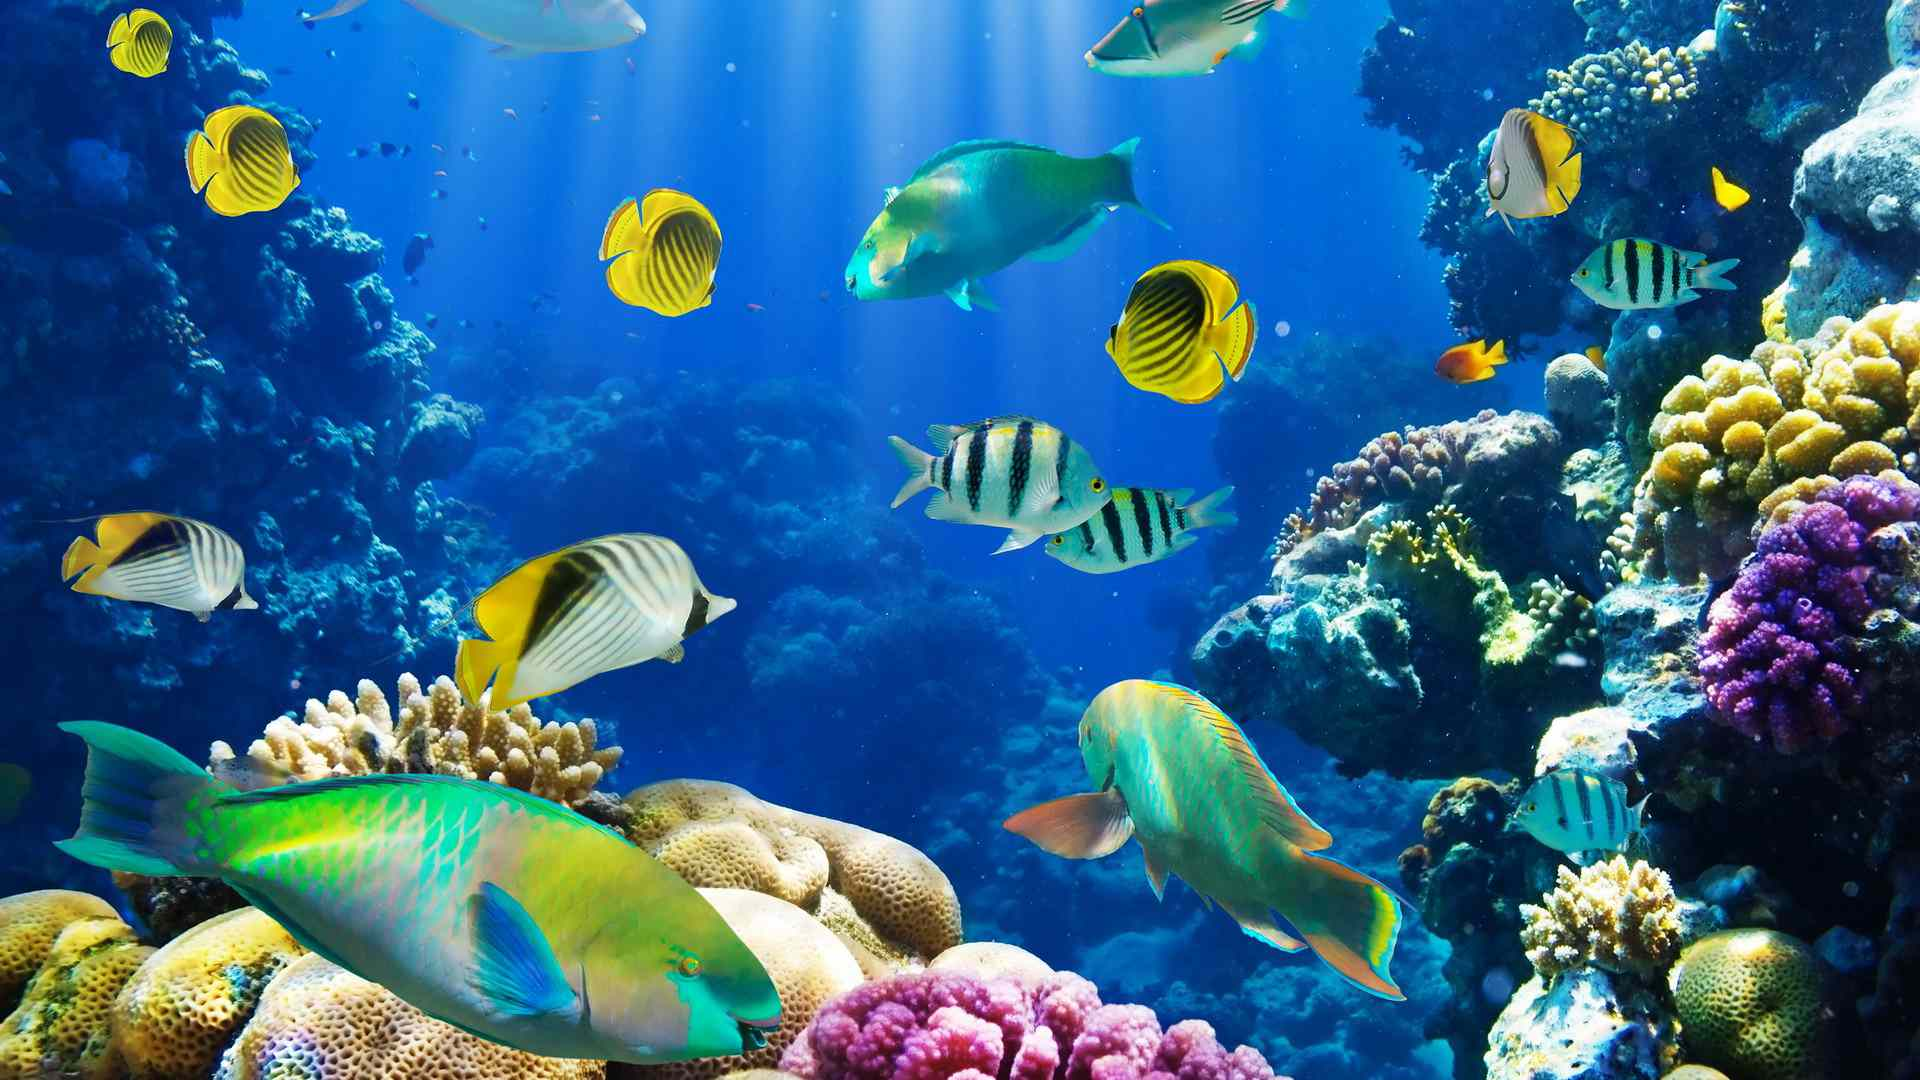 3D Live Wallpapers Free Download Pc